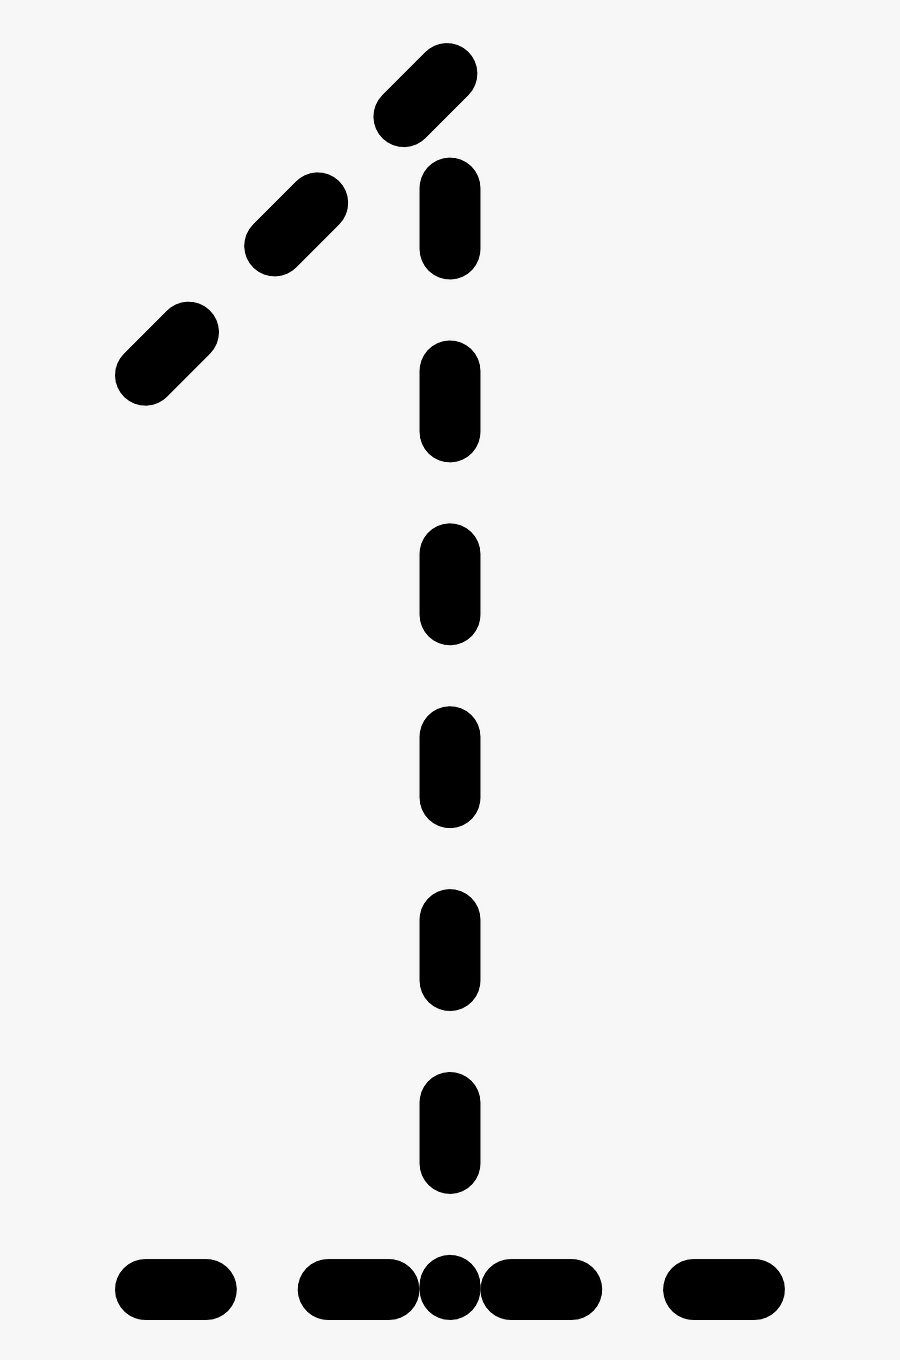 Tracing Of Number 1, Transparent Clipart